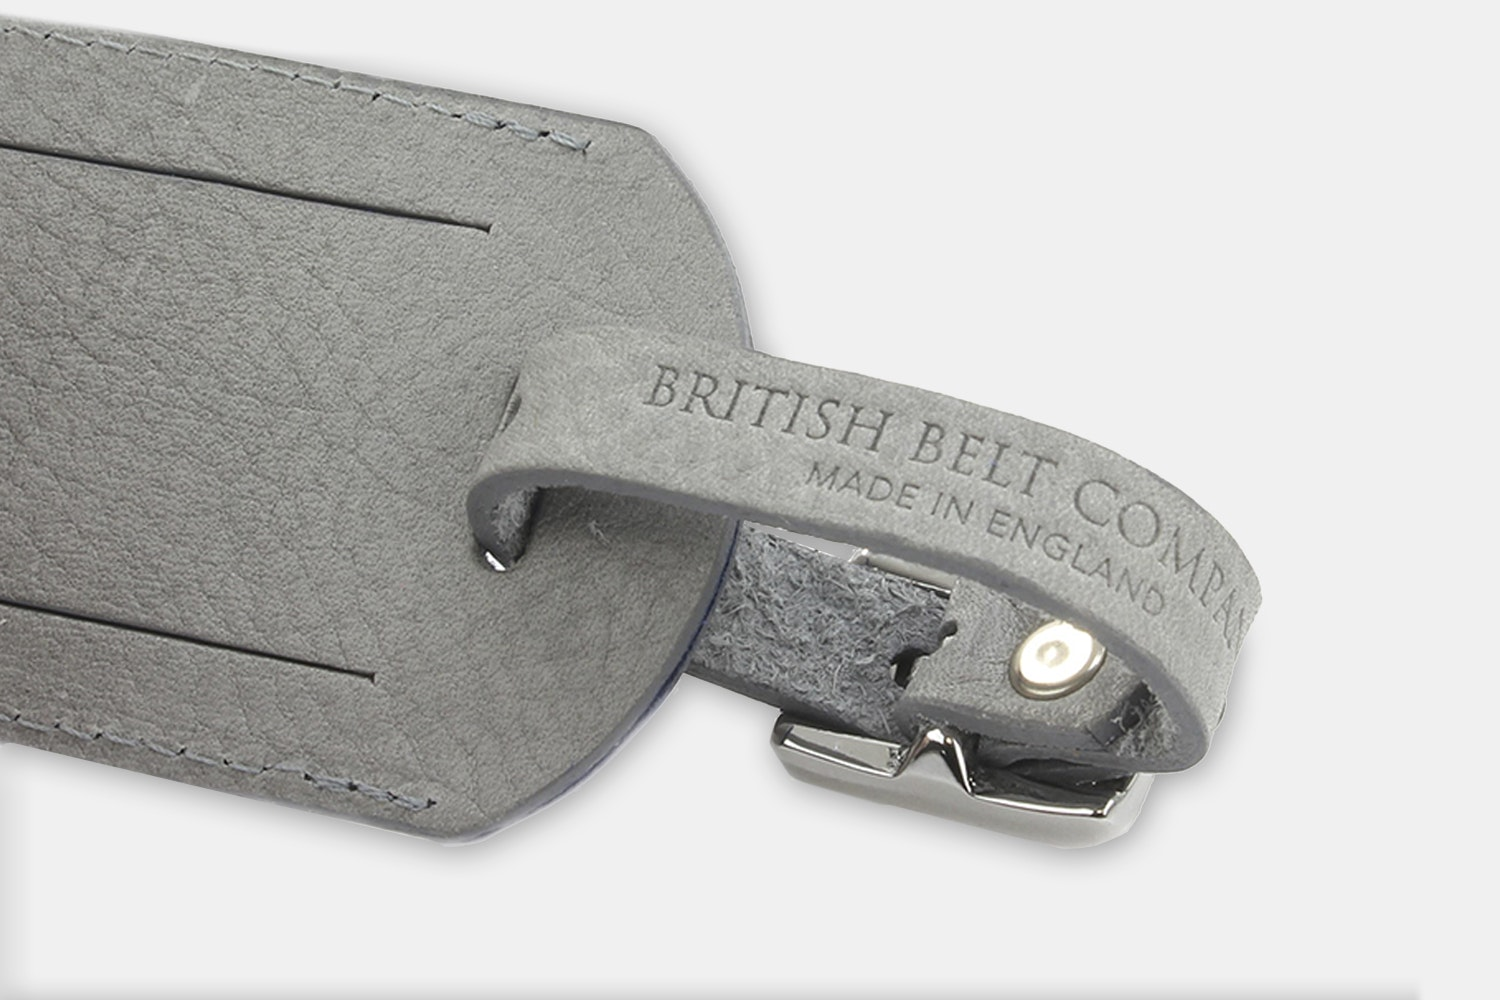 The British Belt Co. Leather Travel Accessories